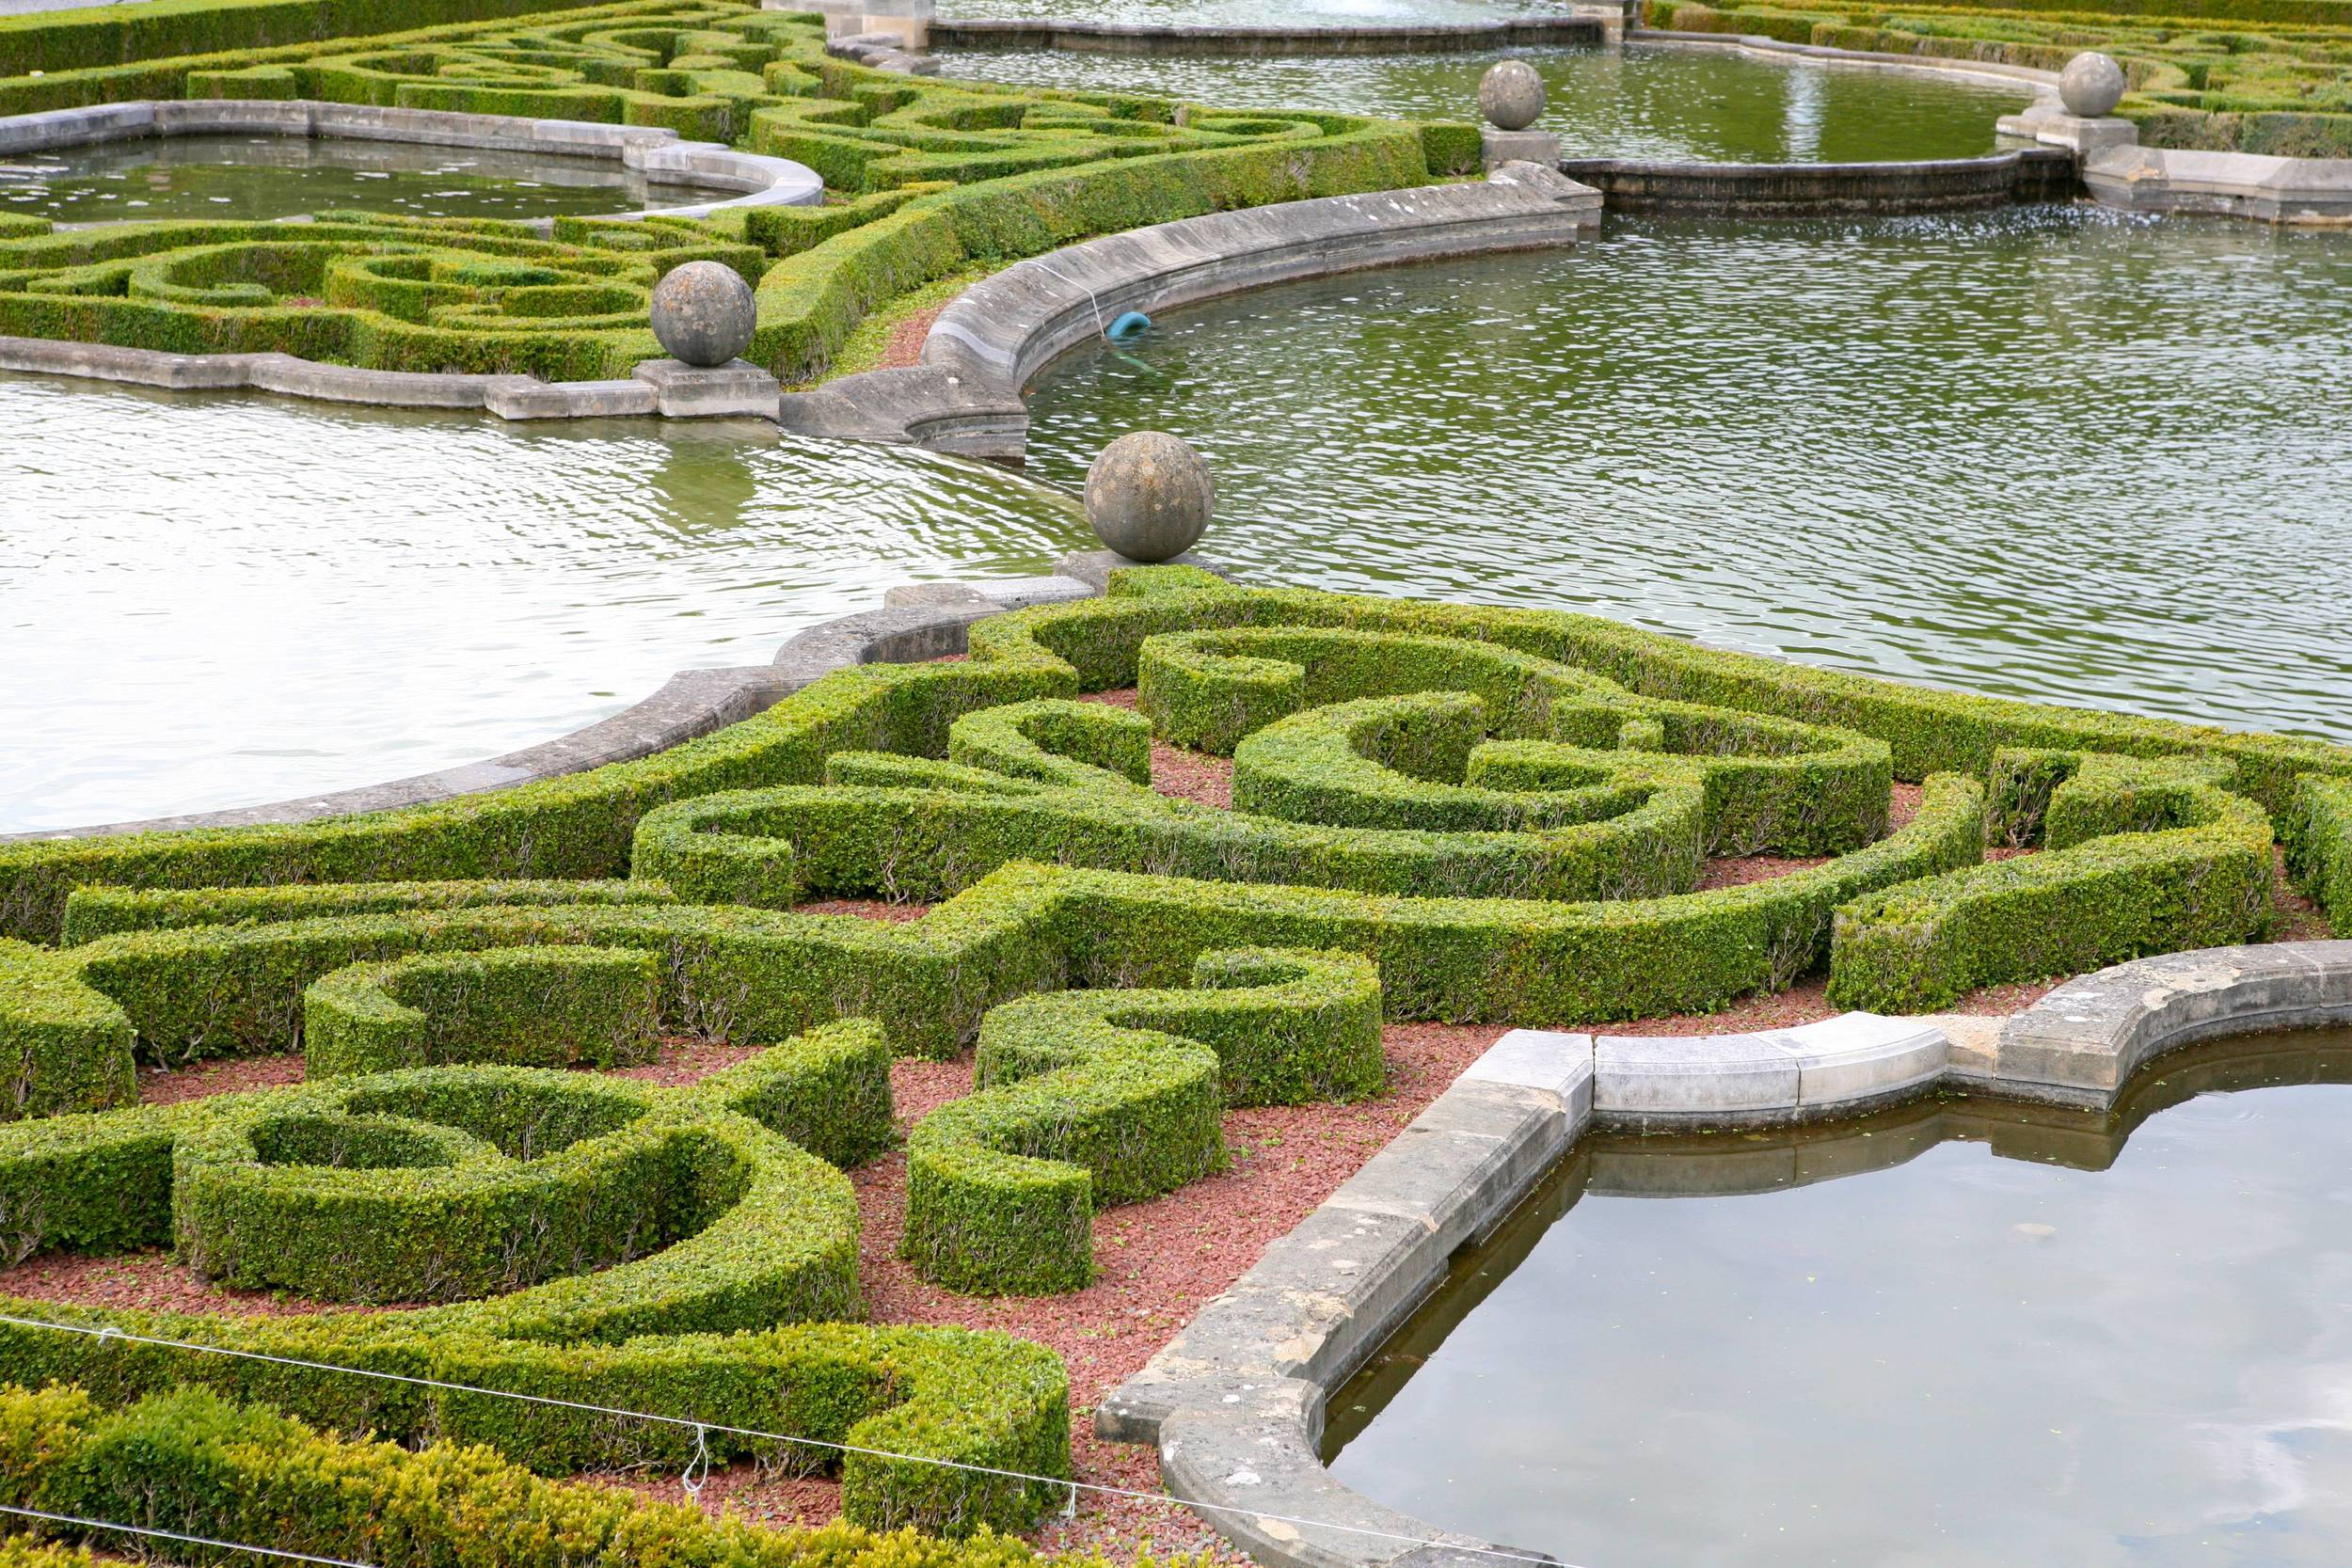 The highly ornate clipped box pattern is a classic element of the European formal garden. This one was installed in the 1920's at  Blenheim Palace , Woodstock, UK.